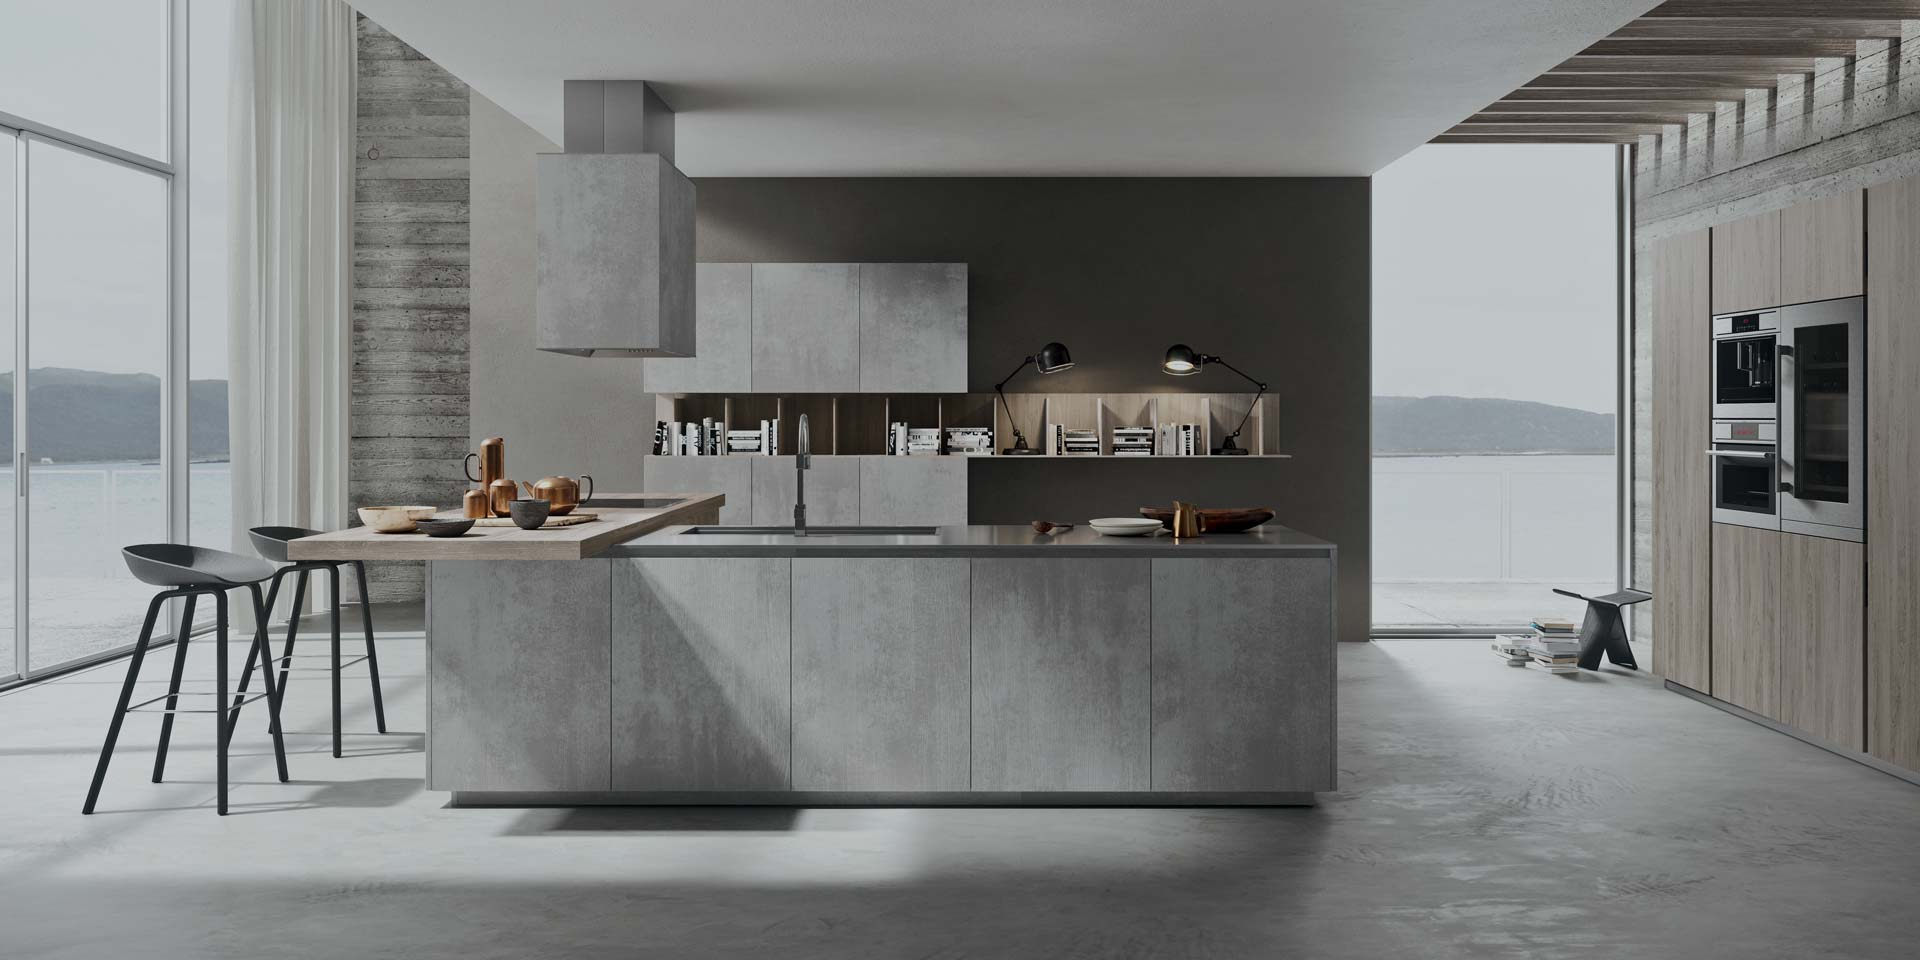 Cucine Copat Catalogo Images - Design & Ideas 2017 - candp.us